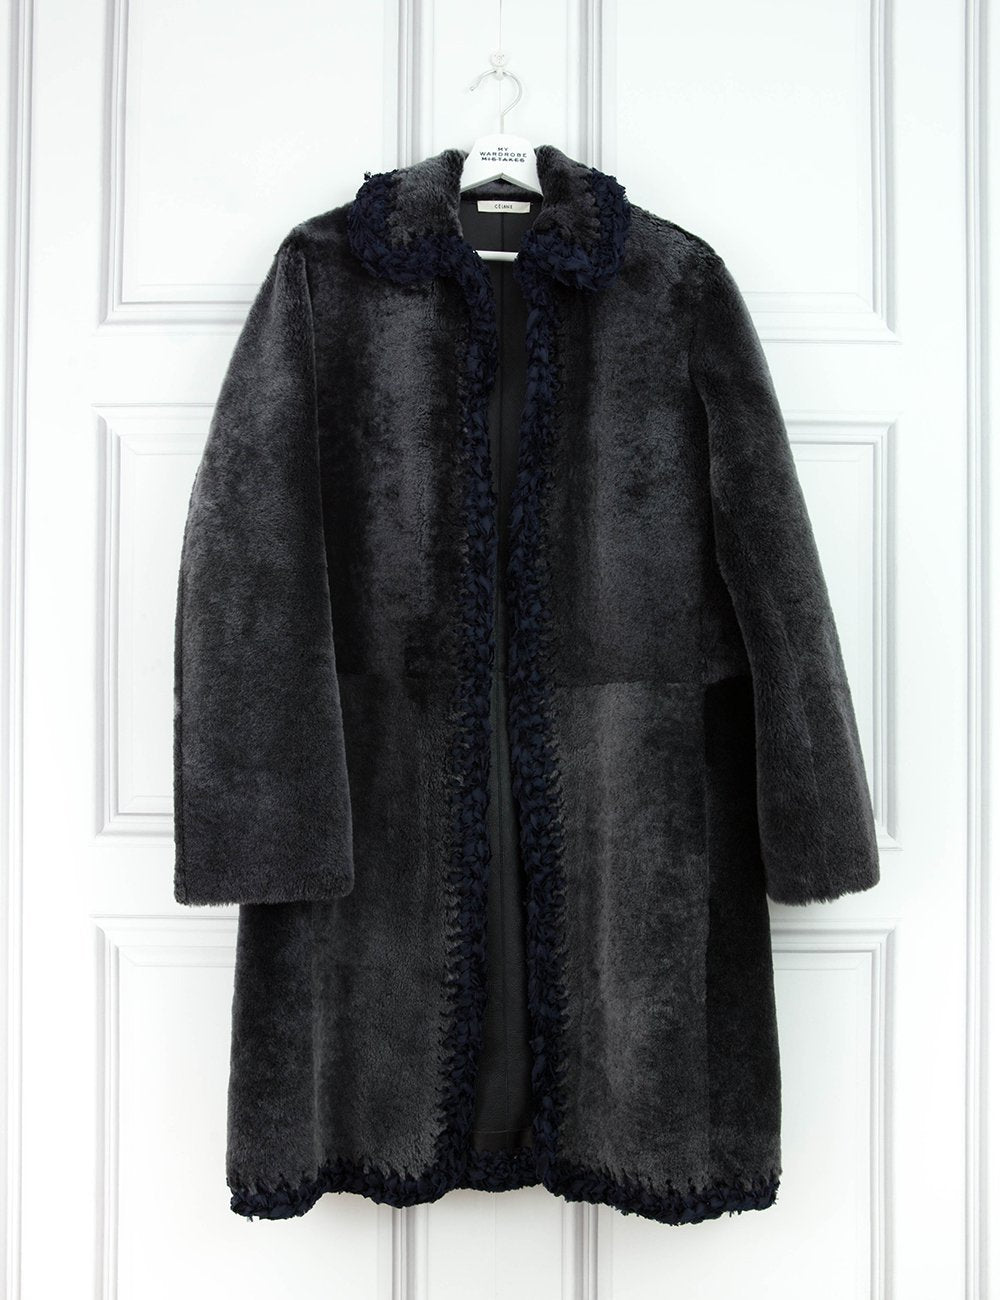 CELINE Reversible slate shearling leather coat